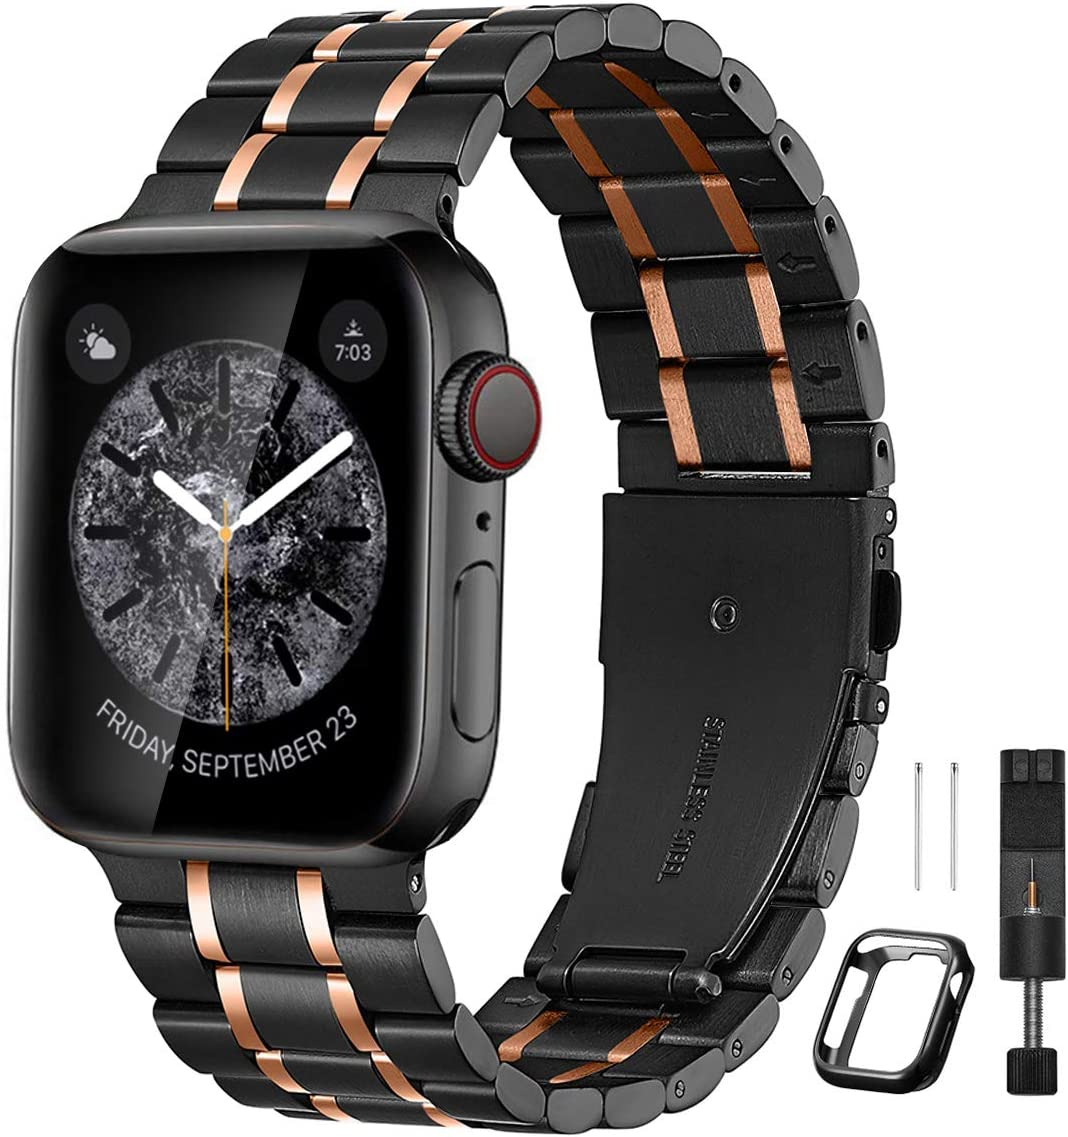 Bestig Compatible for Apple Watch Band 42mm 44mm Premium Solid Stainless Steel Metal Replacement Adjustable Sport Wristband Bracelet Strap for iWatch Series 6 SE 5 4 3 2 1 (Matte Black/Polished Rose Gold)